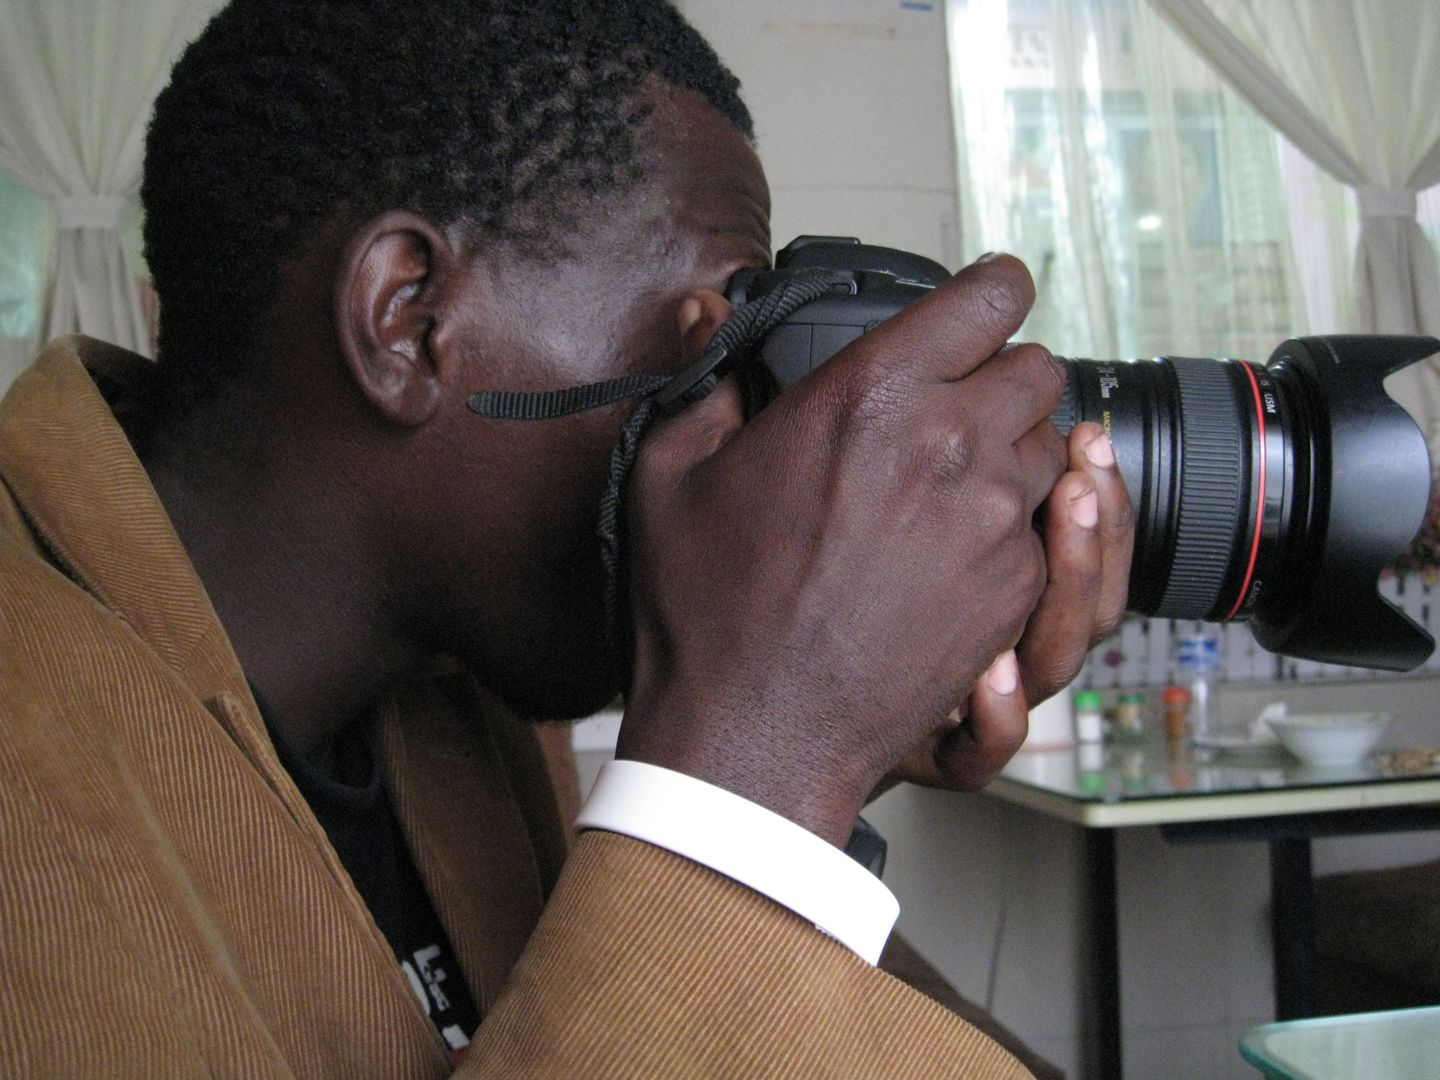 video photo essay photographer kiripi katembo siku neo griot photographer kiripi katembo siku at work